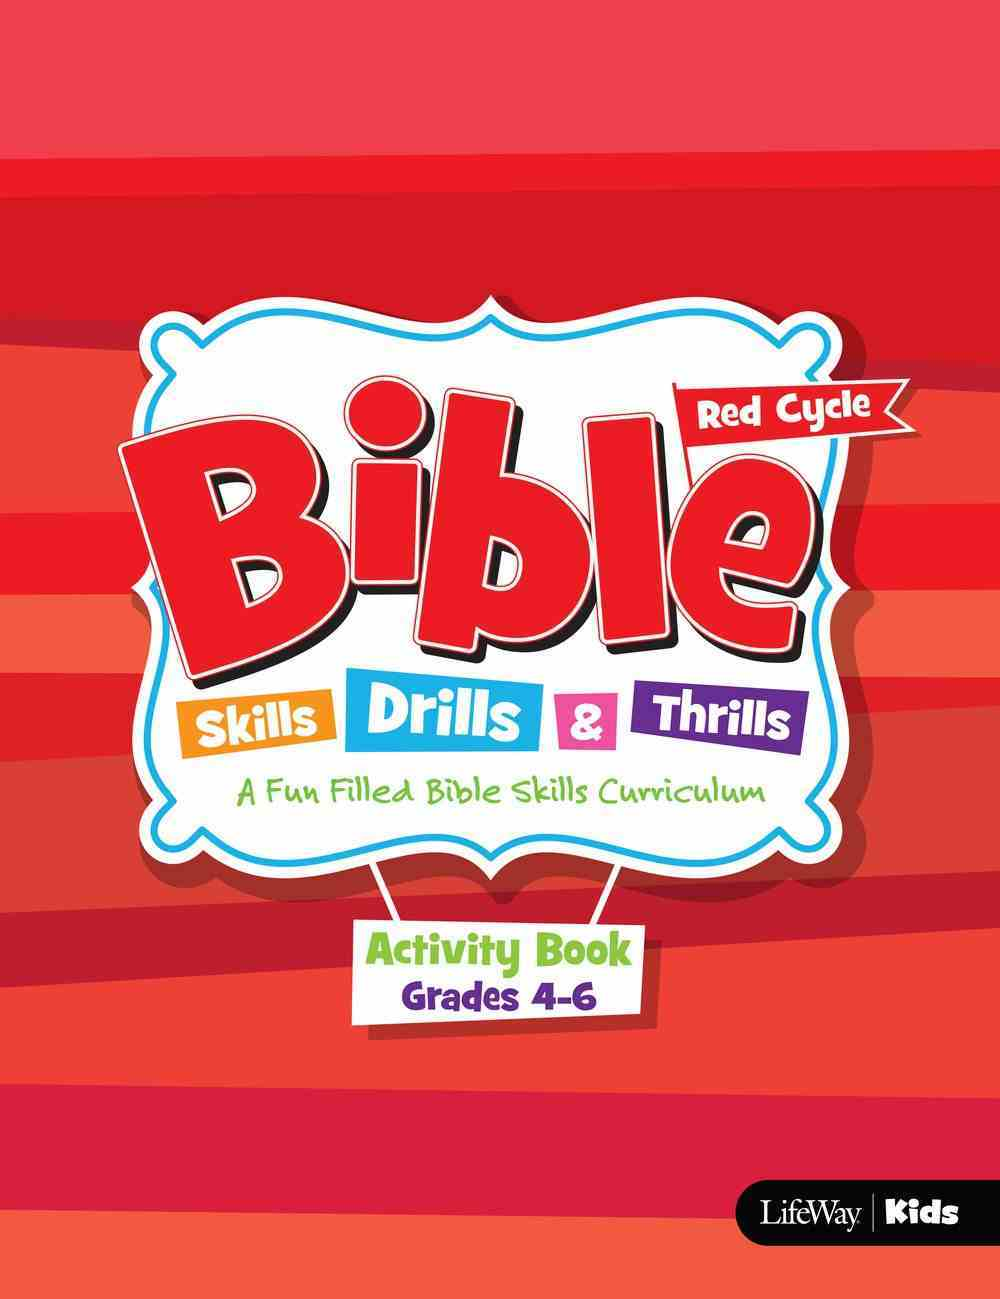 Bible Skills, Drills & Thrills: Red Cycle - Grades 4-6 Activity Book Paperback